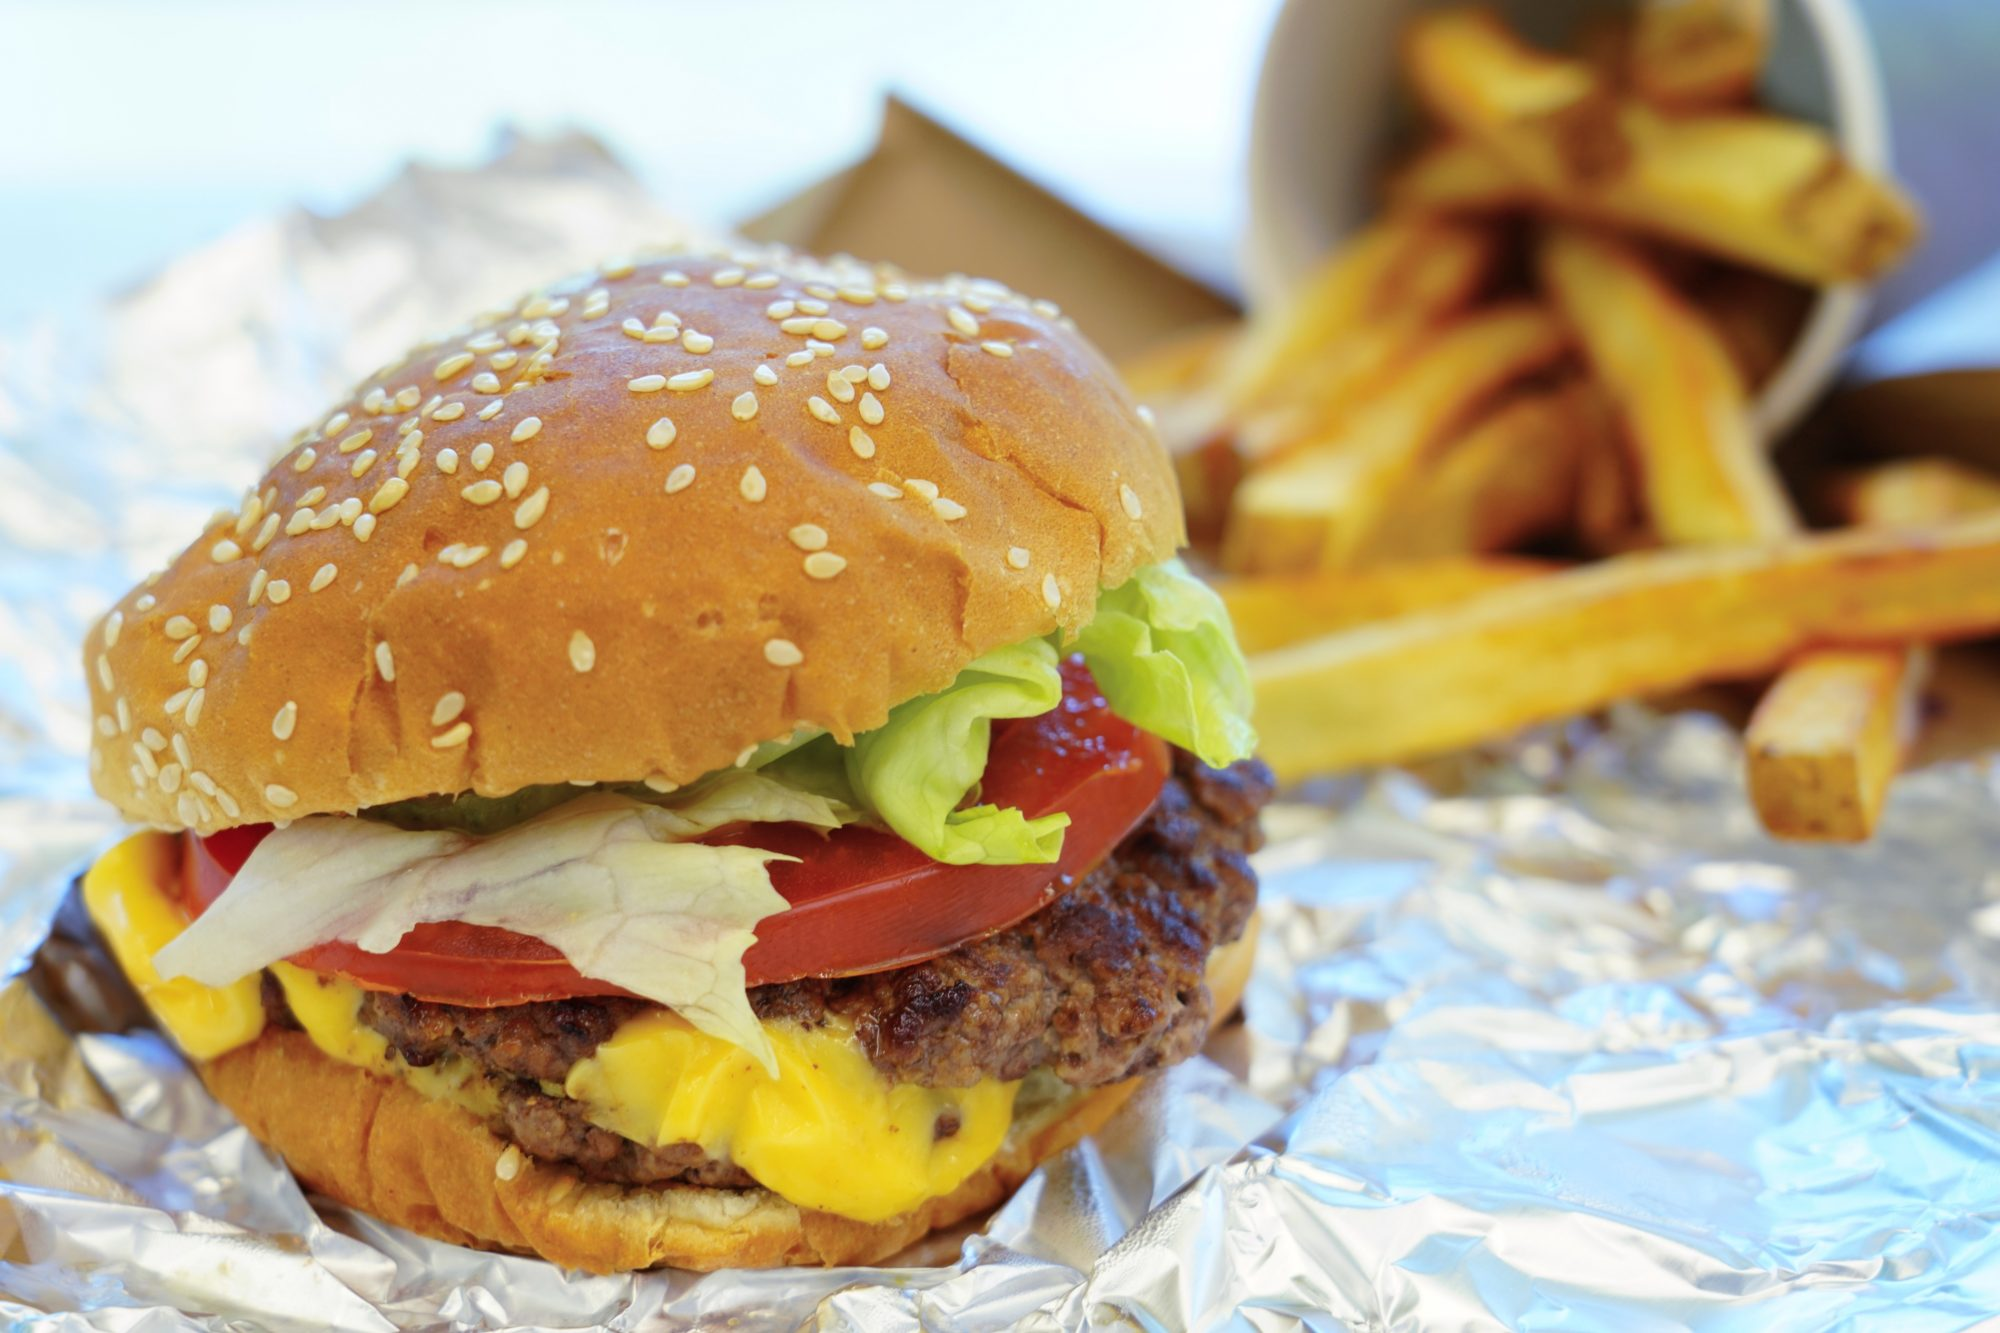 copycat burger and fries on foil wrapper